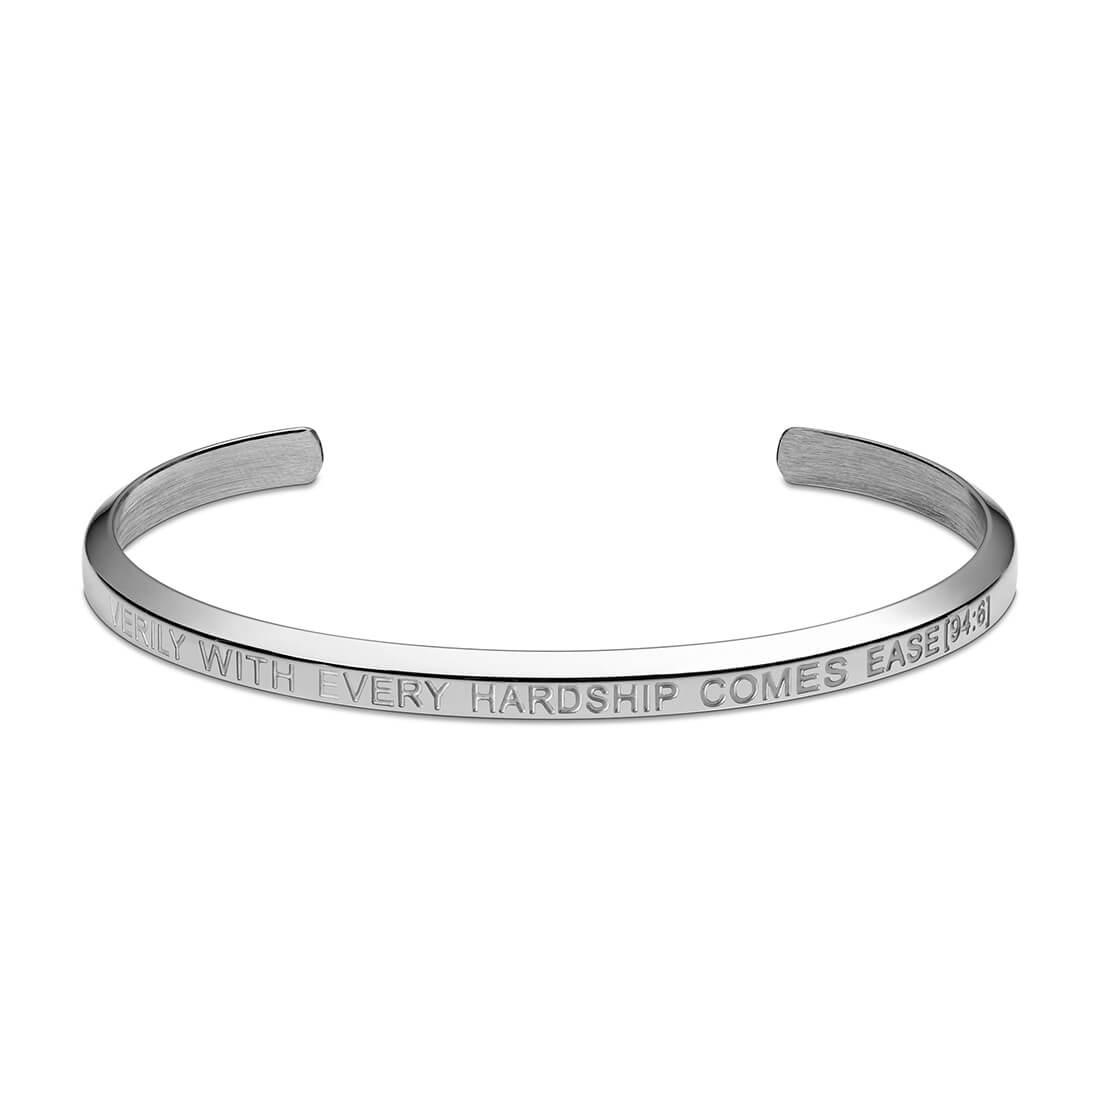 With Every Hardship Comes Ease Cuff Bracelet in Silver by Crscnt Moon